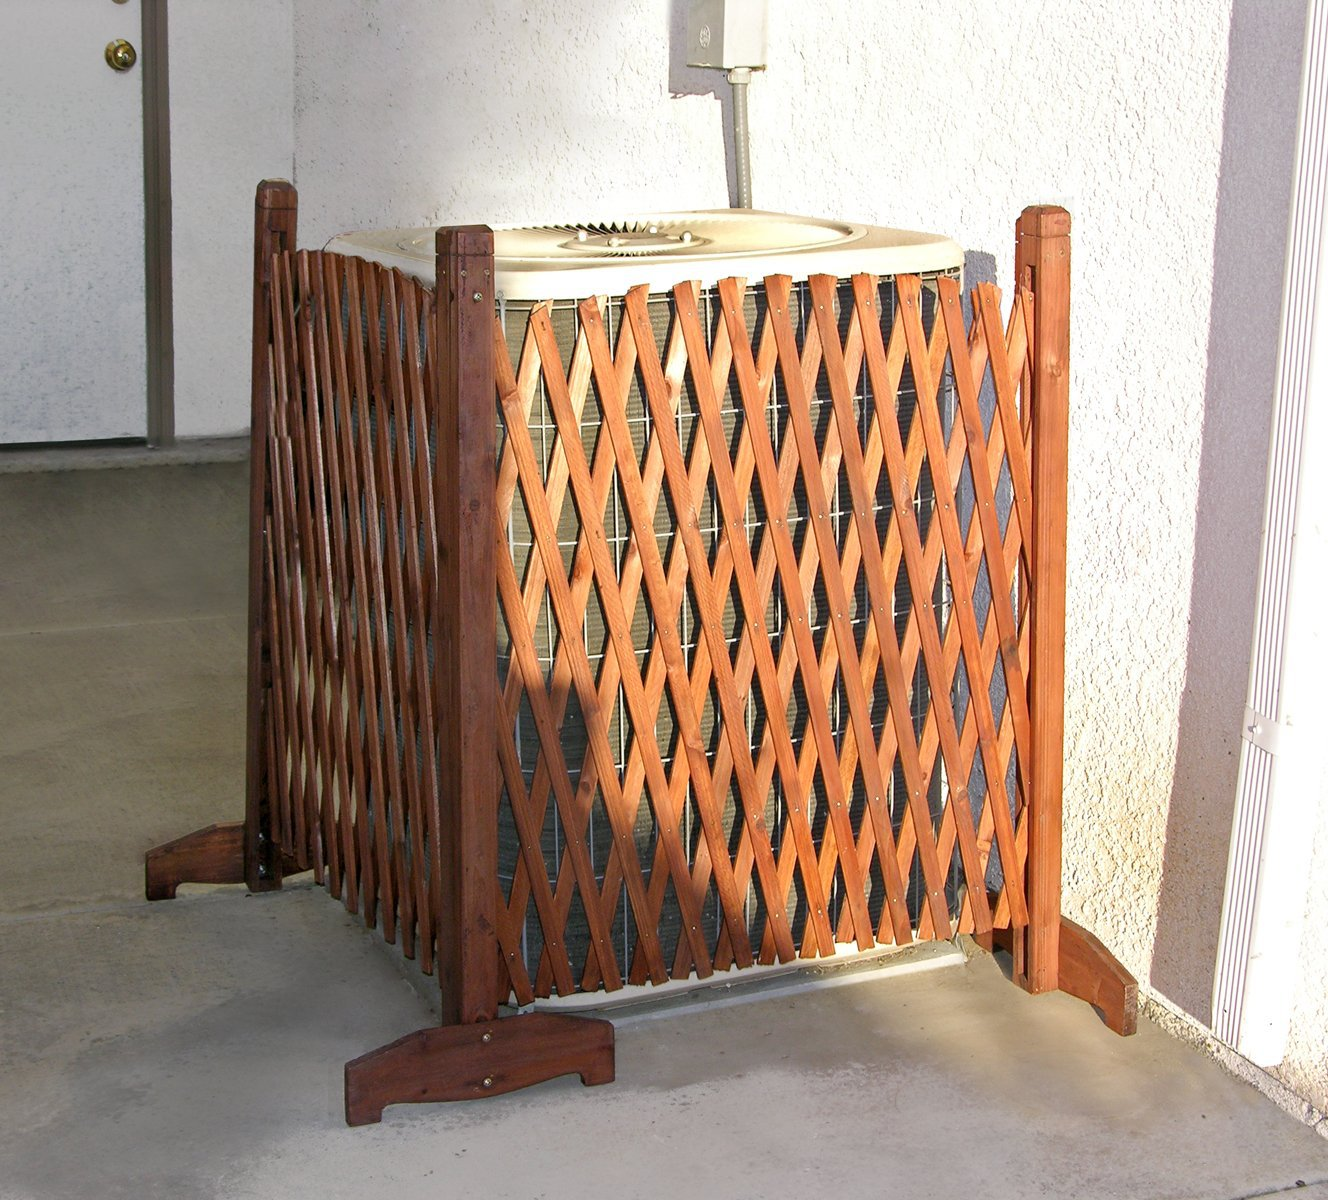 Wood lattice privacy fence screen ebay for Lattice screen fence